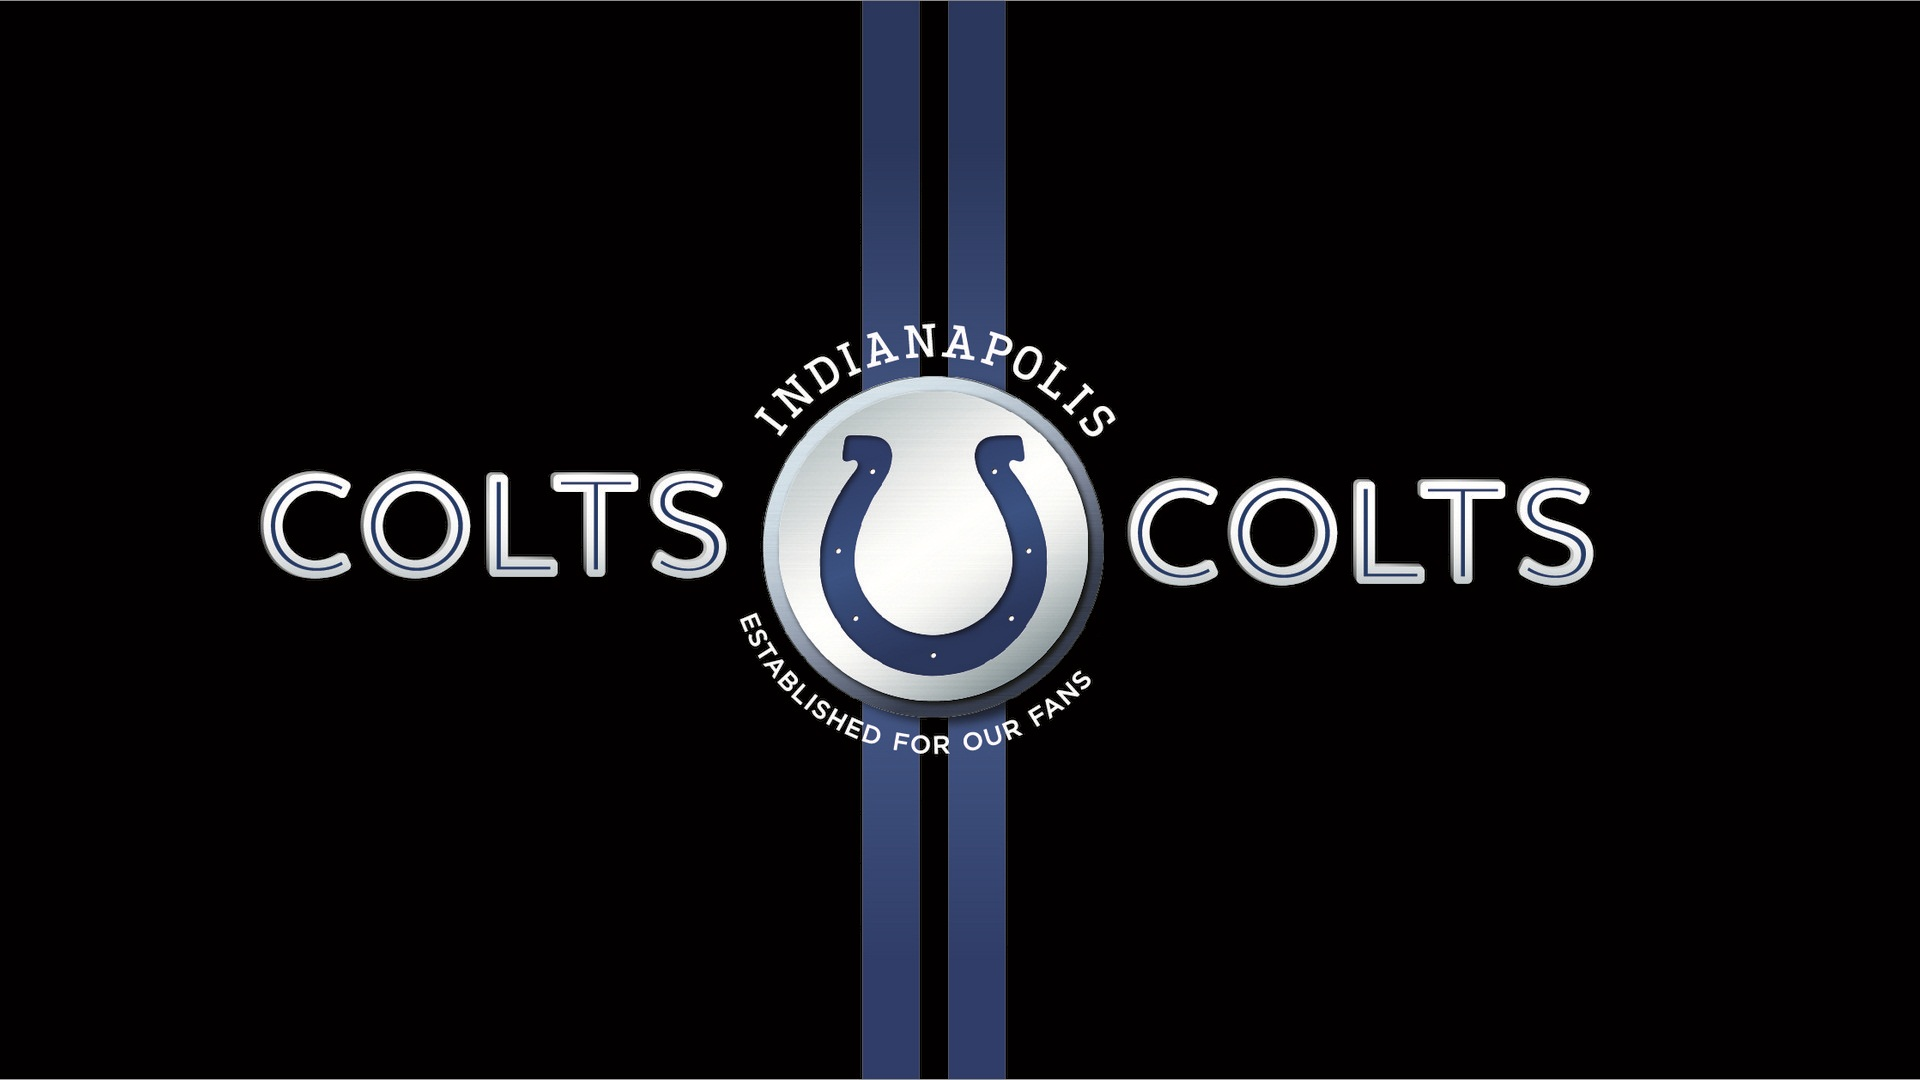 Indianapolis Colts Wallpaper 2019 NFL Football Wallpapers 1920x1080